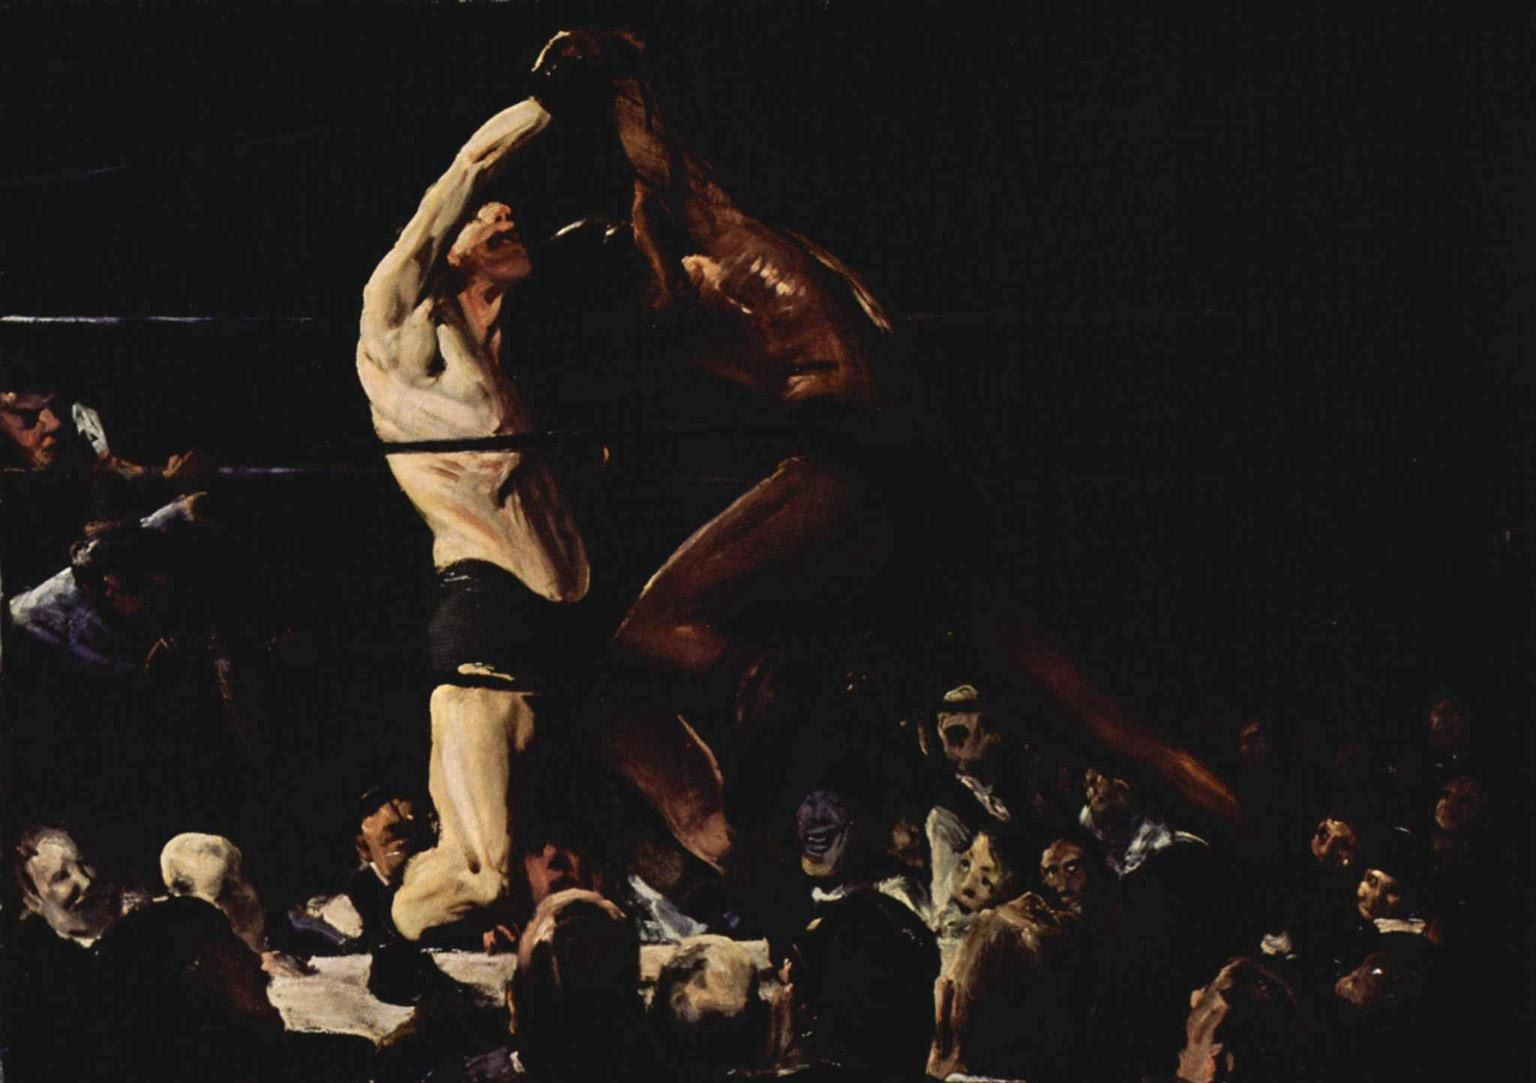 George Bellows Both Members of This Club